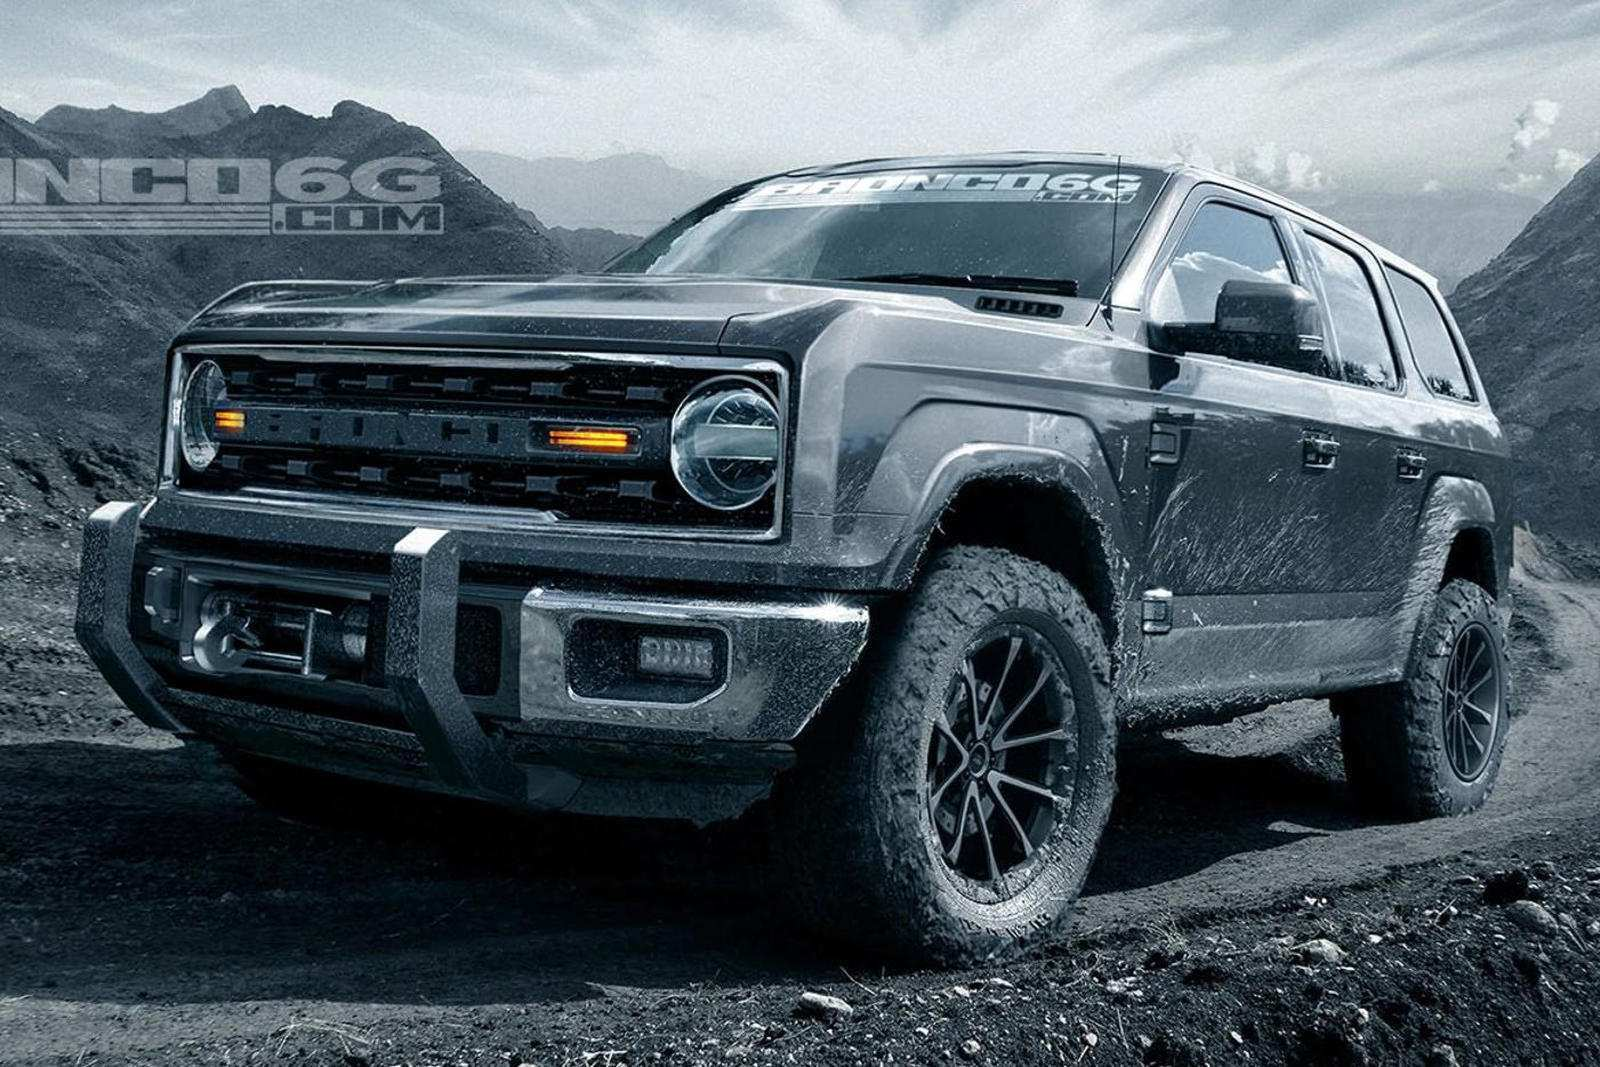 18 Best 2020 Ford Bronco Design Performance